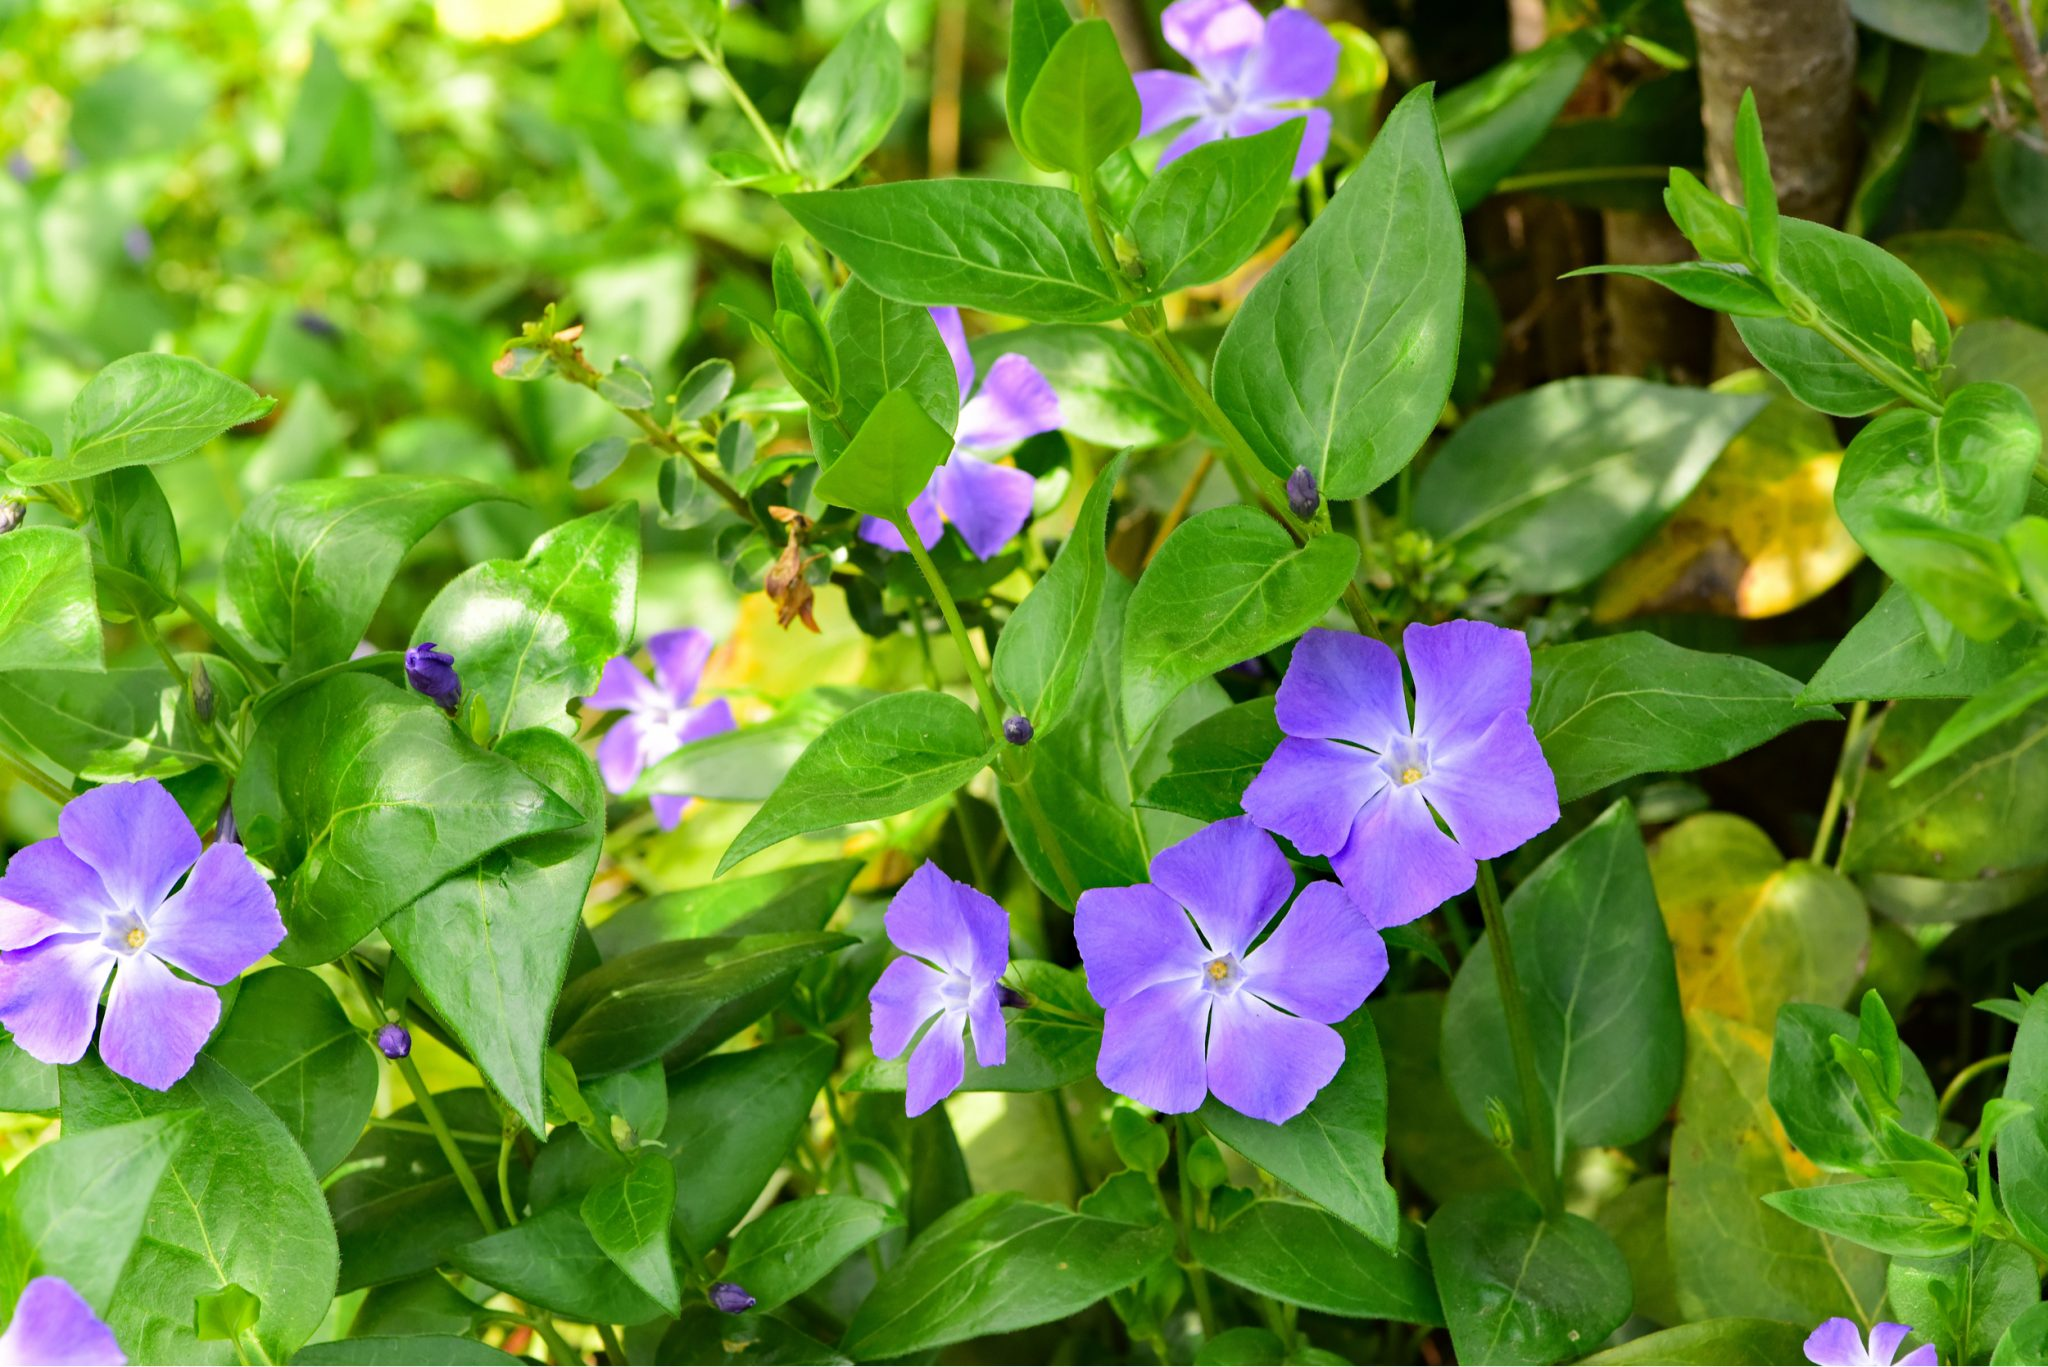 Vinca Major and Vinca Minor (Periwinkle, Creeping Myrtle)